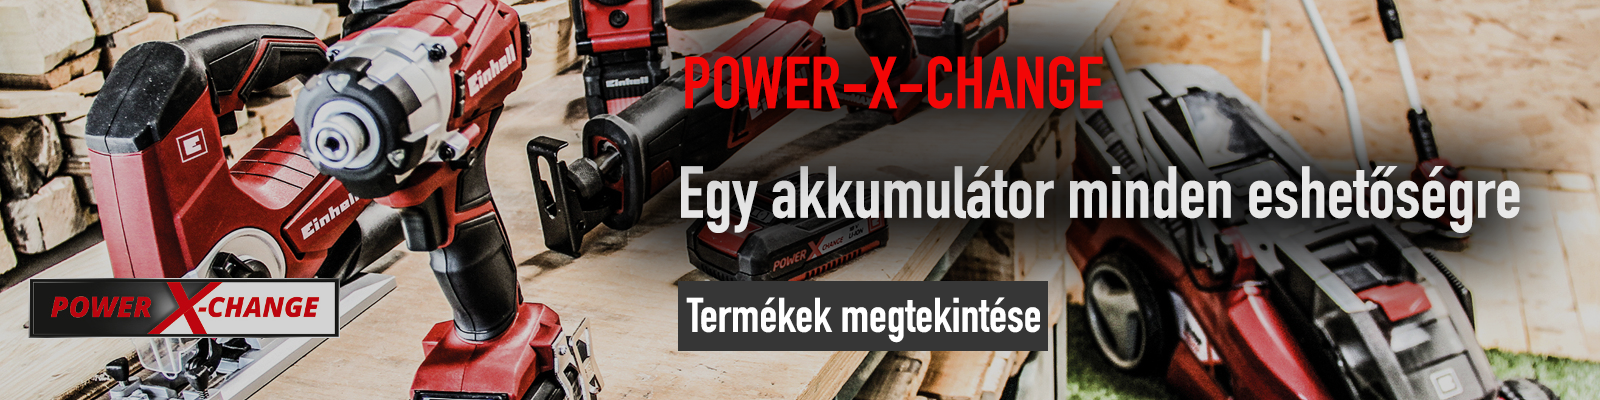 Power-X-Change